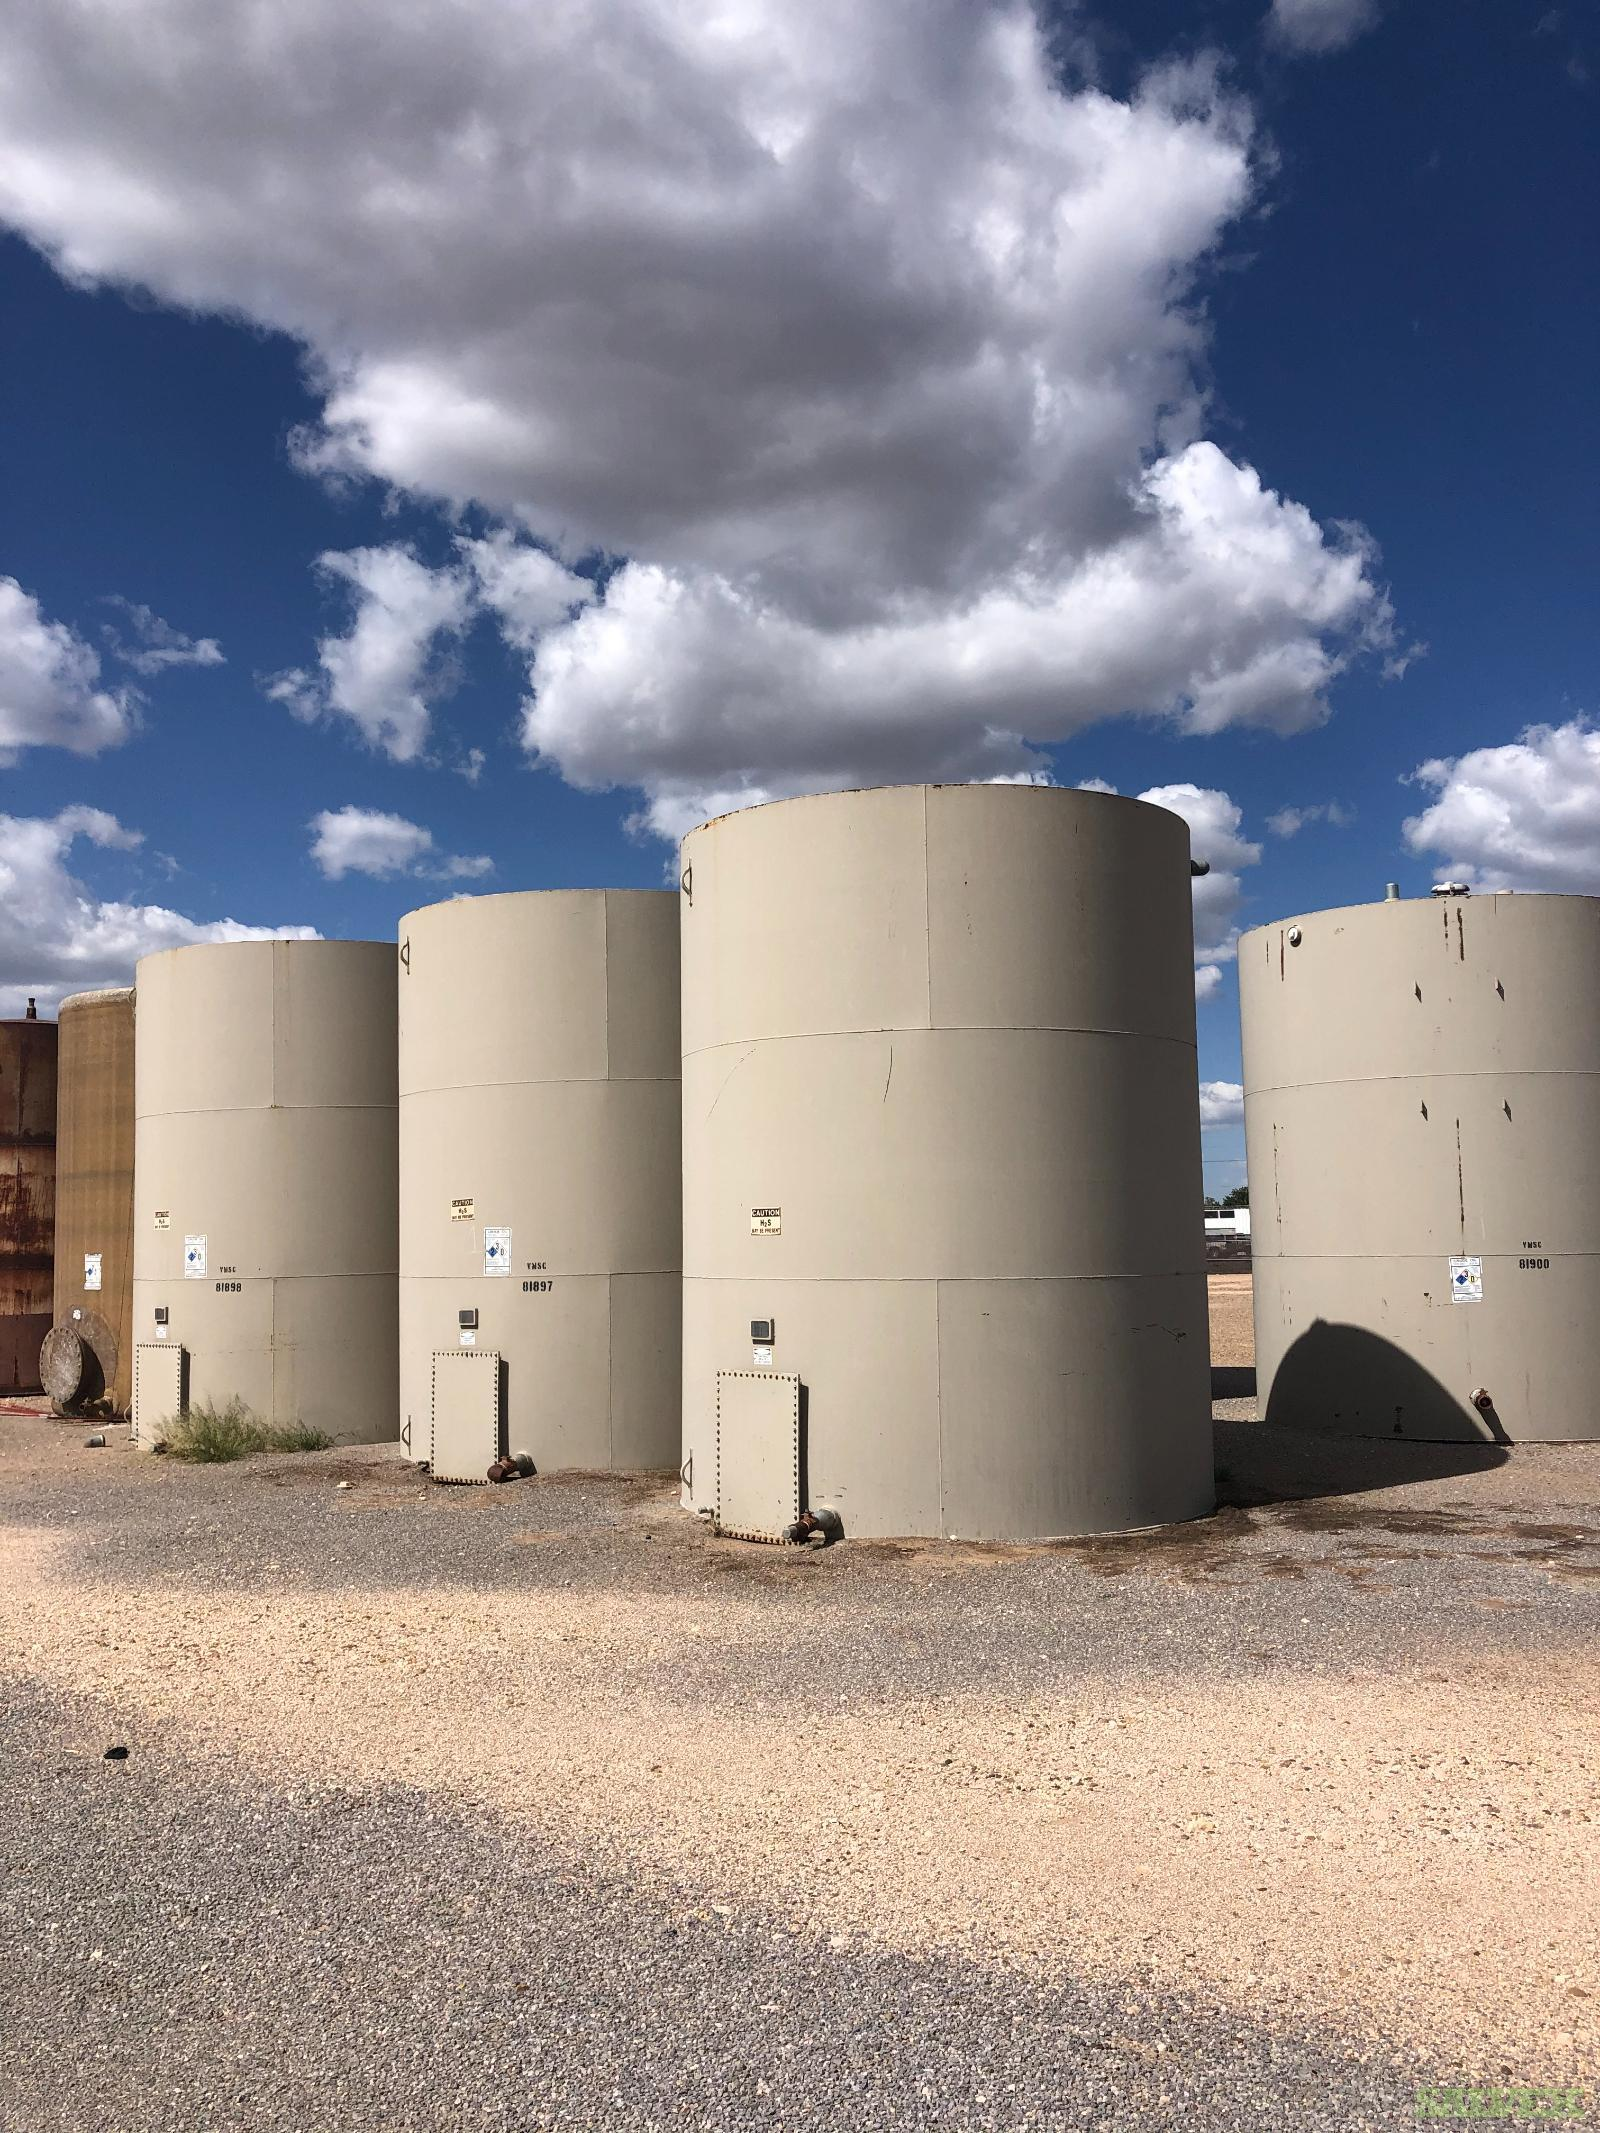 12'x15' 300 BBL Steel Tanks (7 Units)